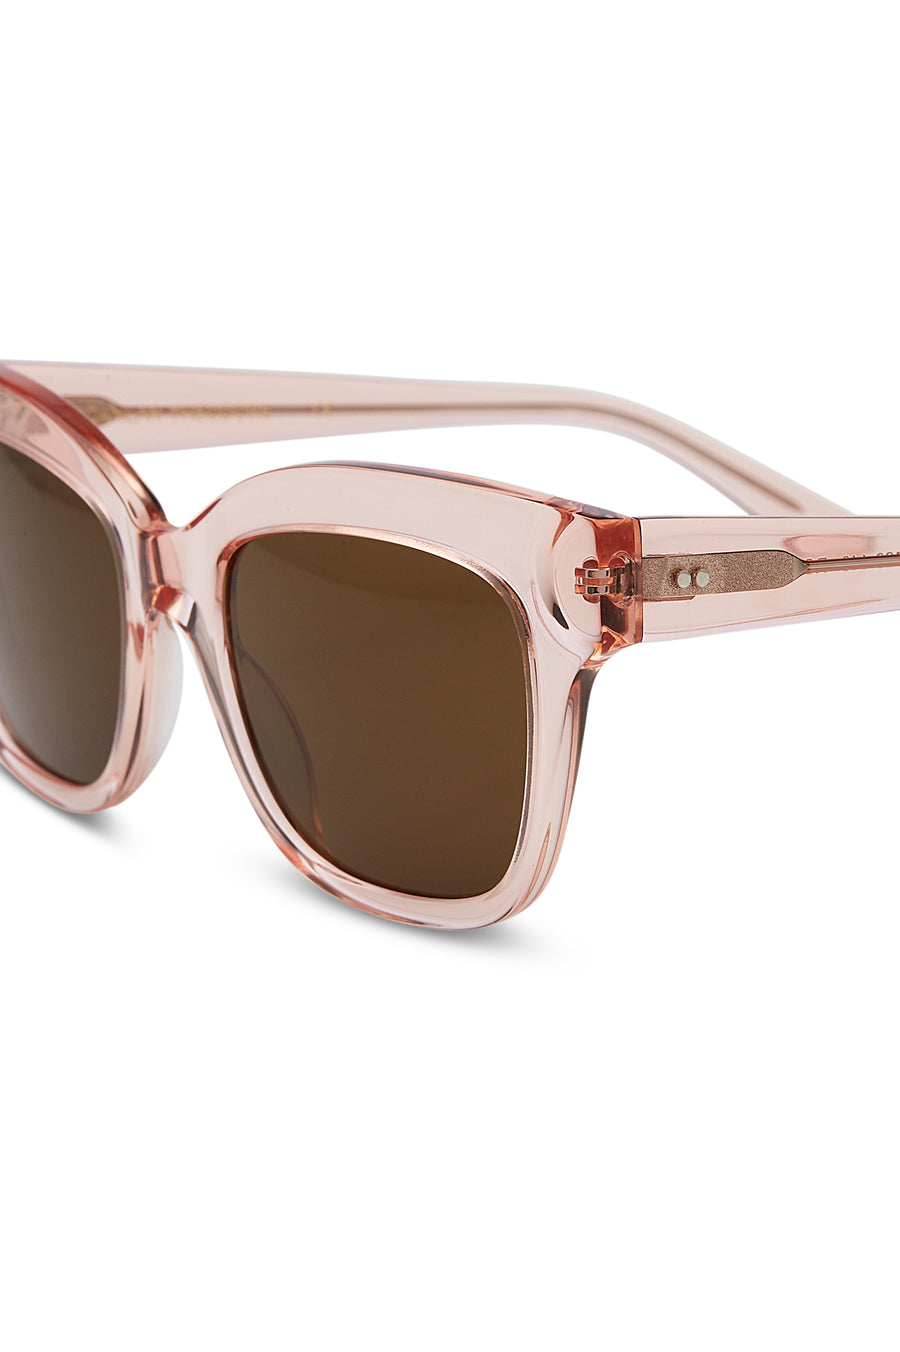 ST ICE SUNGLASSES ROSE, ROSE color